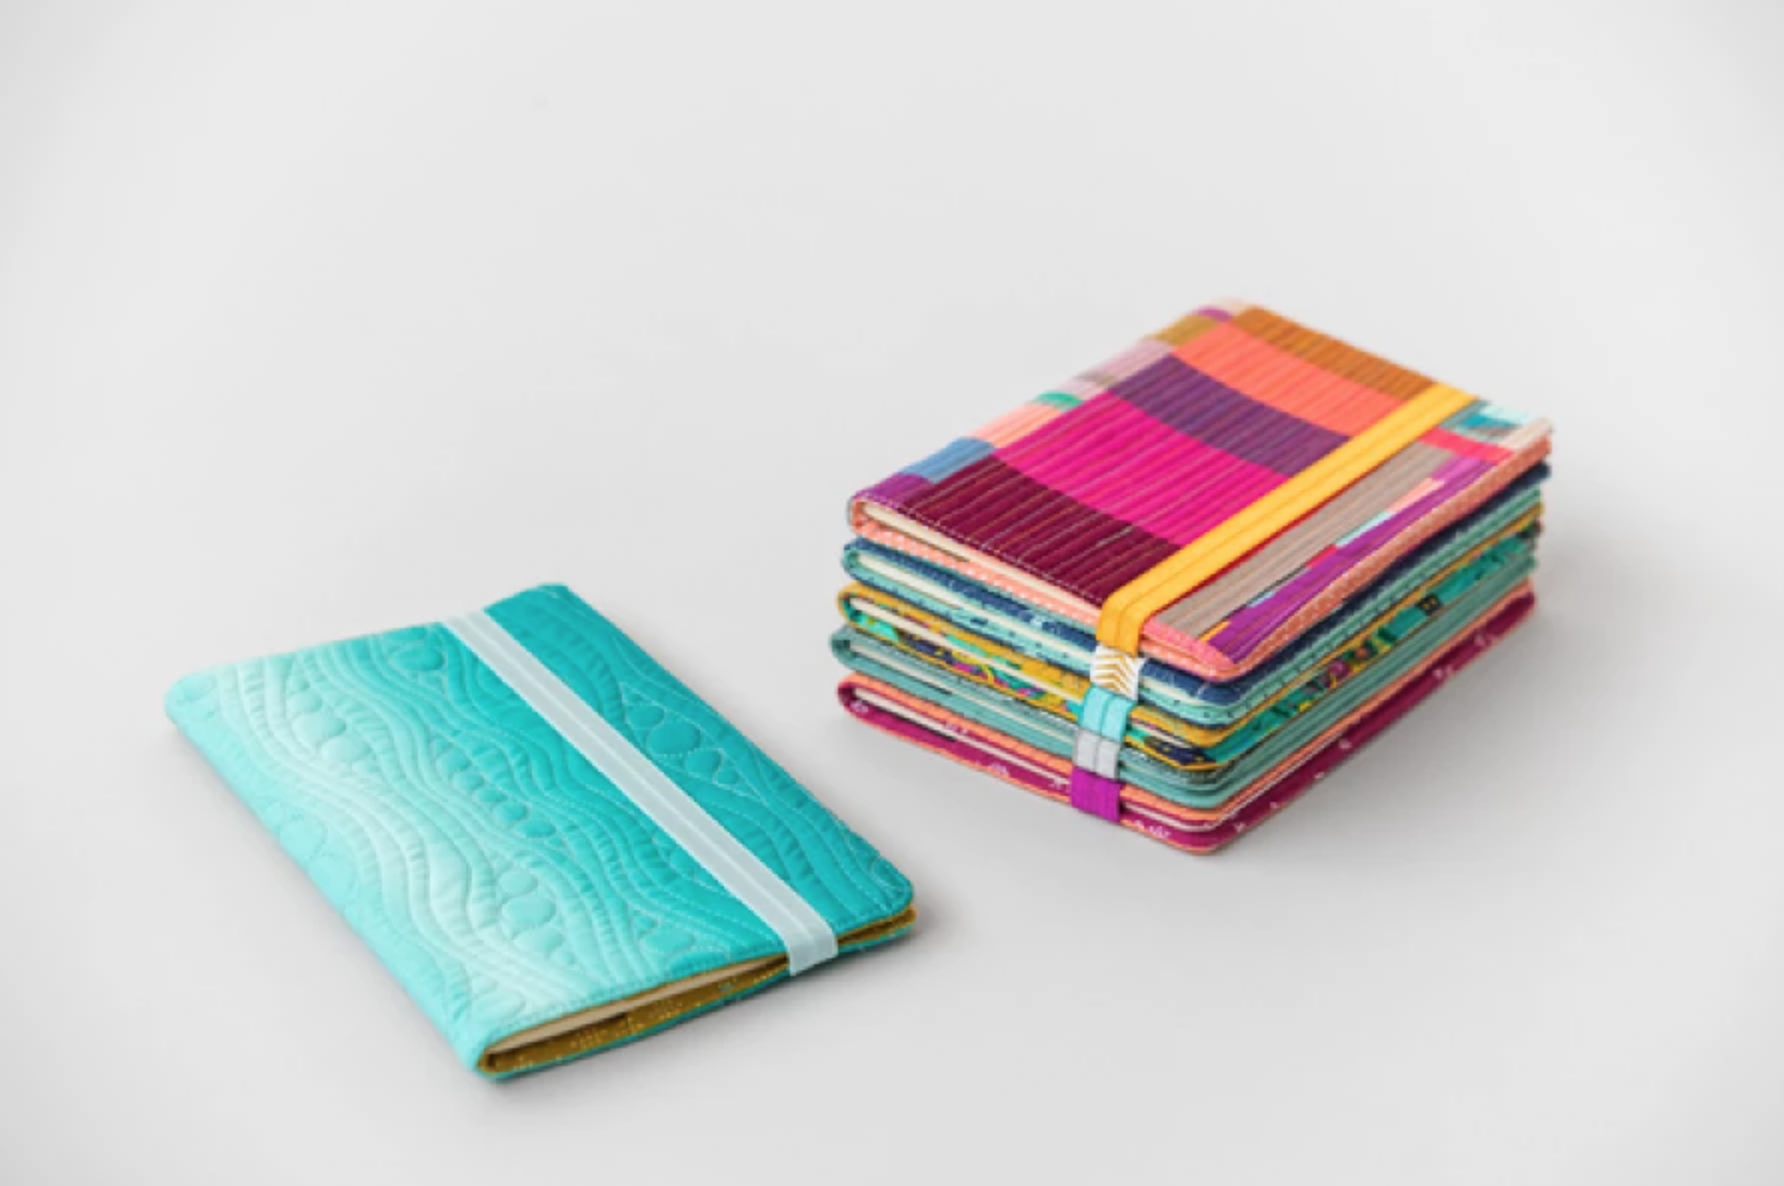 quilted journal covers